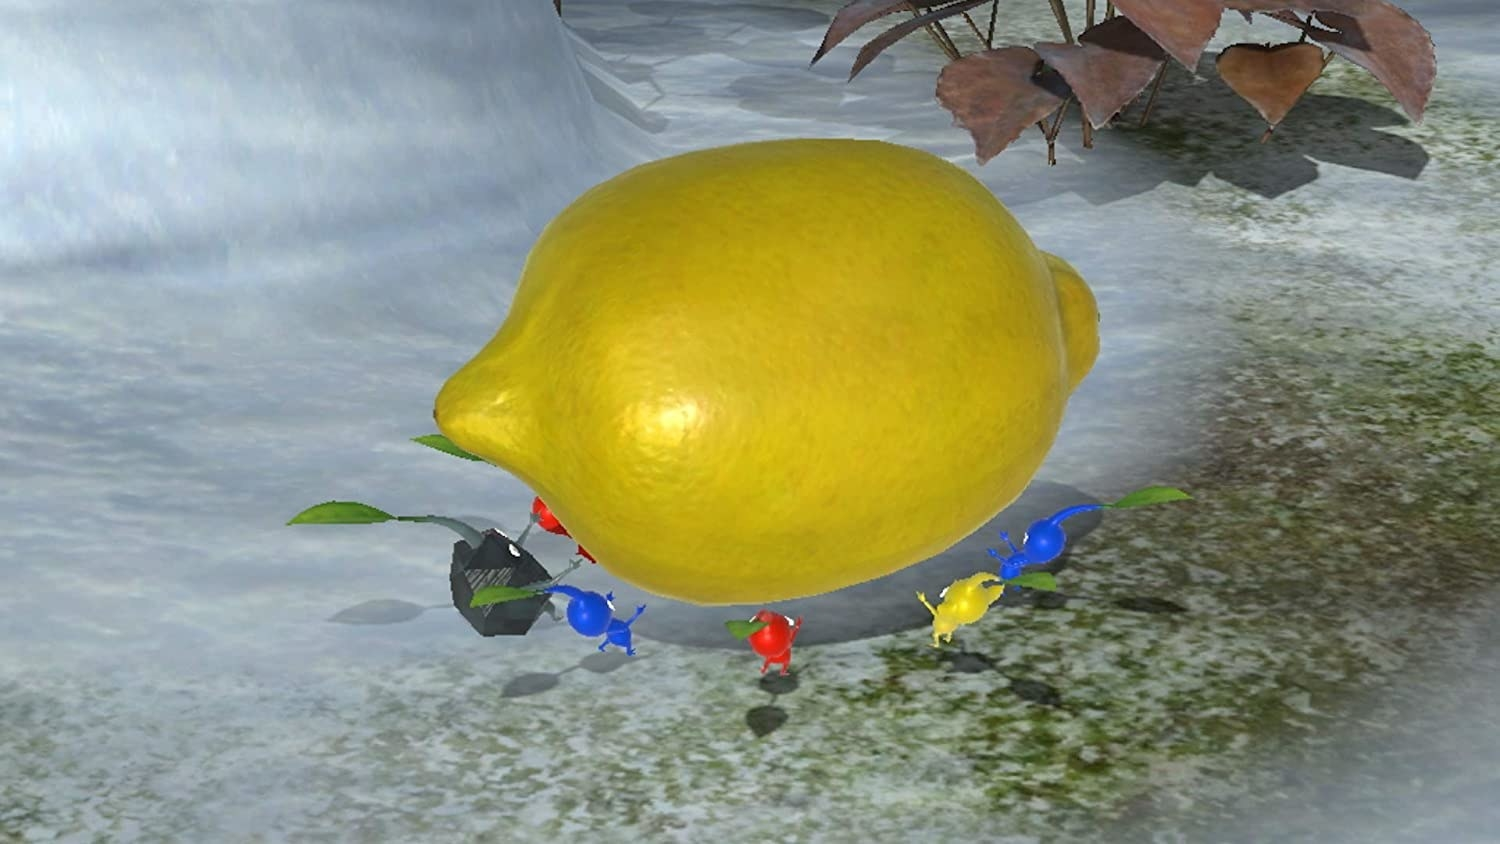 A group of small characters surrounding a lemon